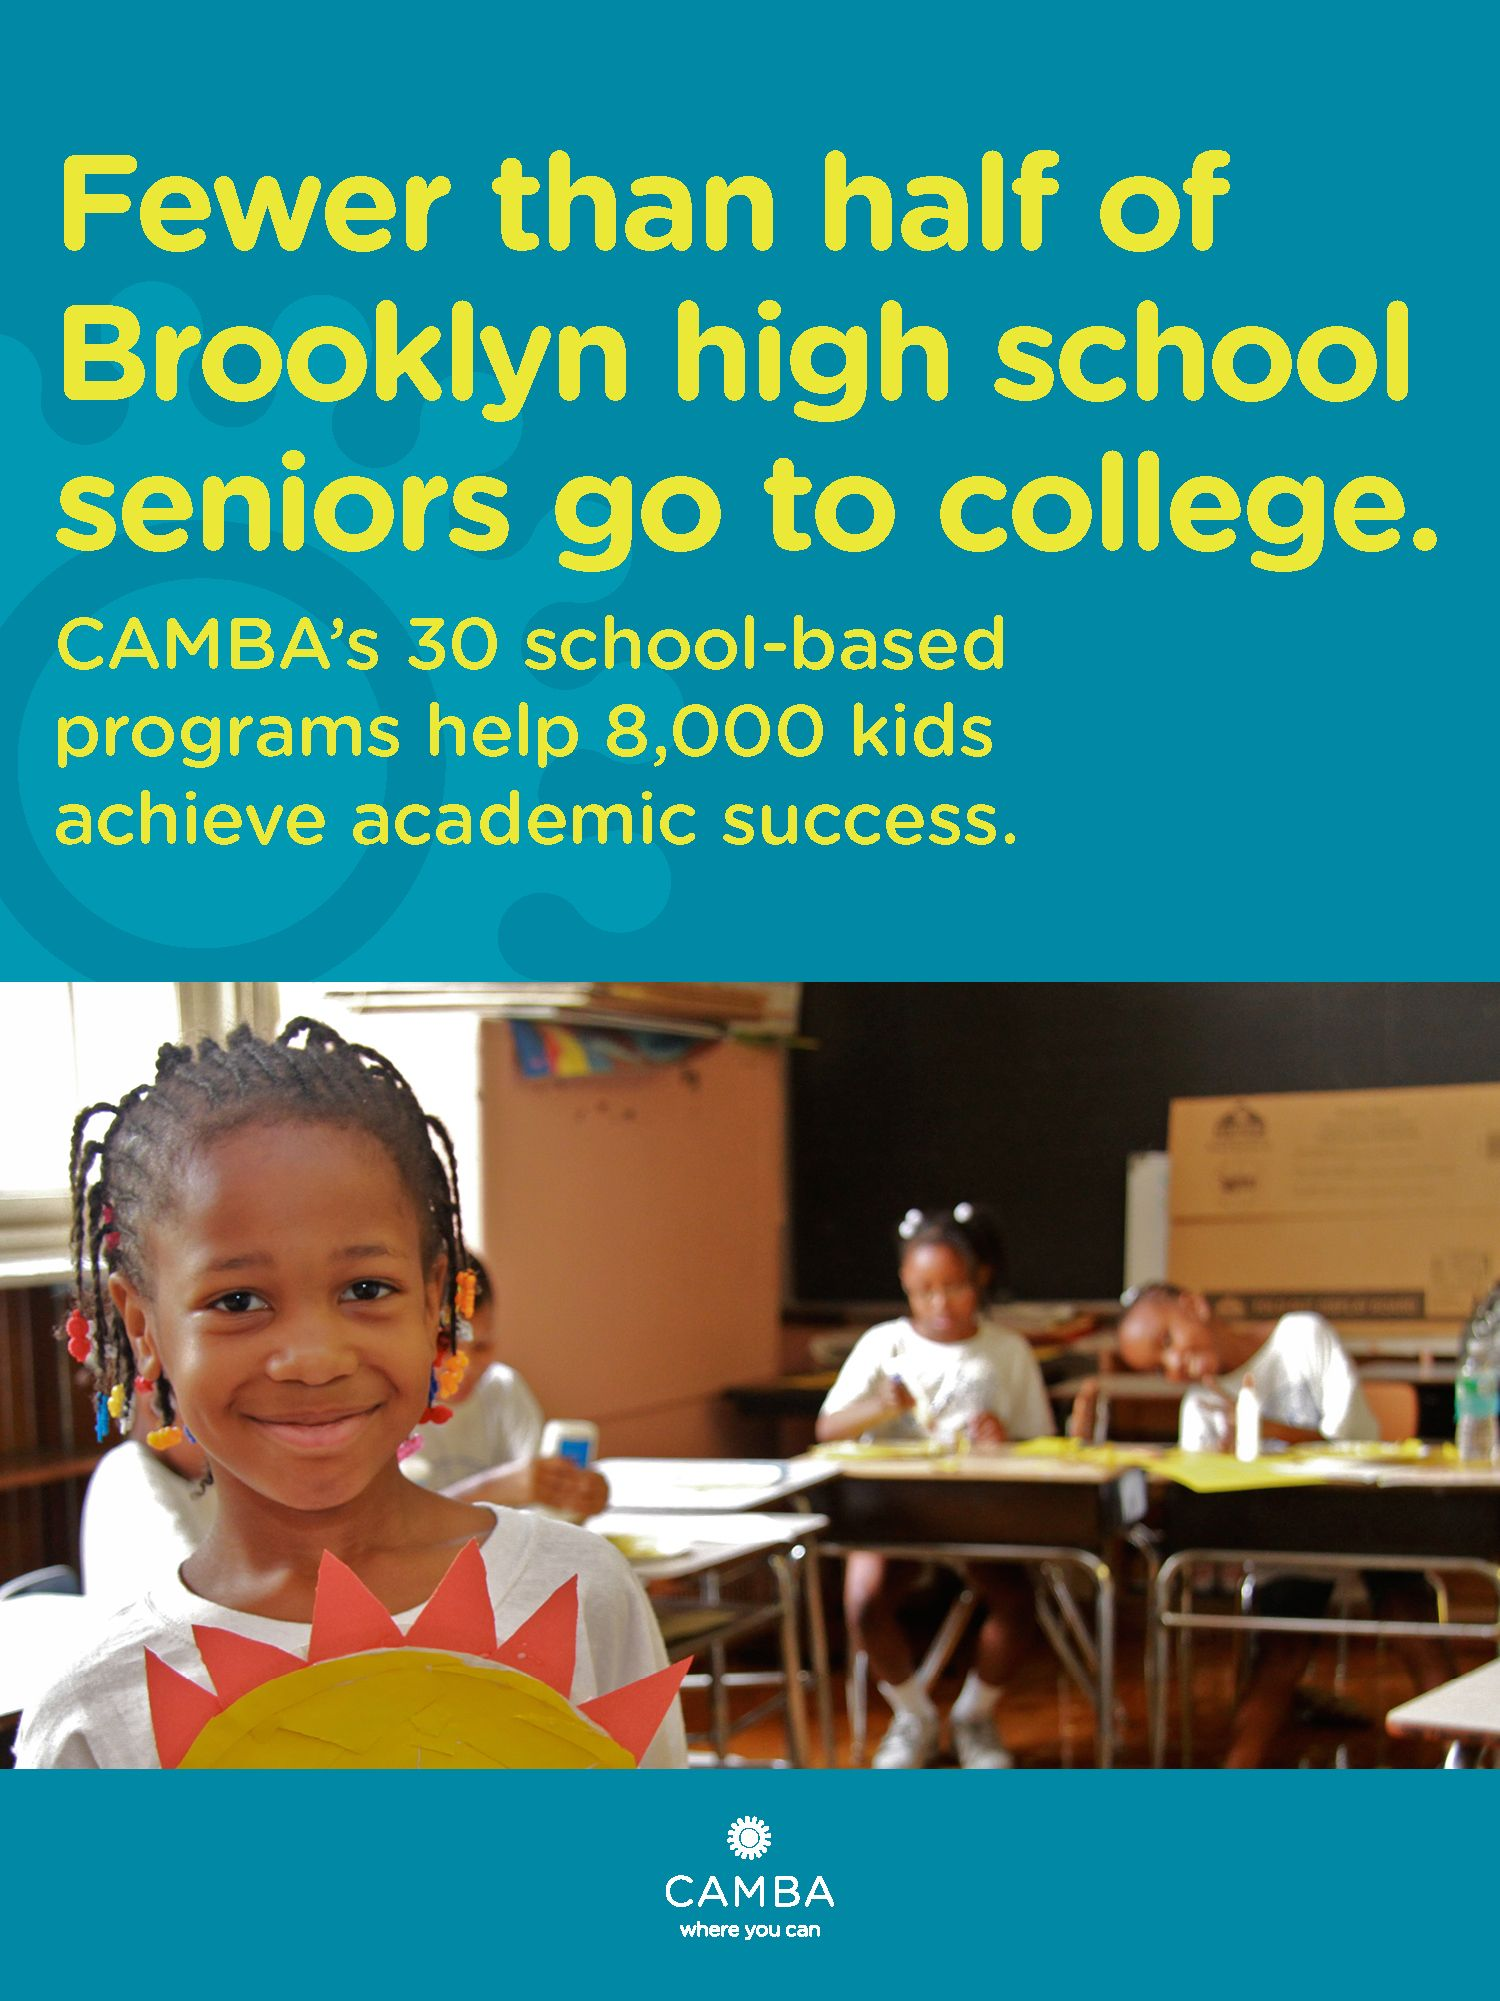 Fewer than half of #Brooklyn #highschool seniors go to #college. CAMBA's 30 school-based programs help 8,000 kids achieve #academic success.